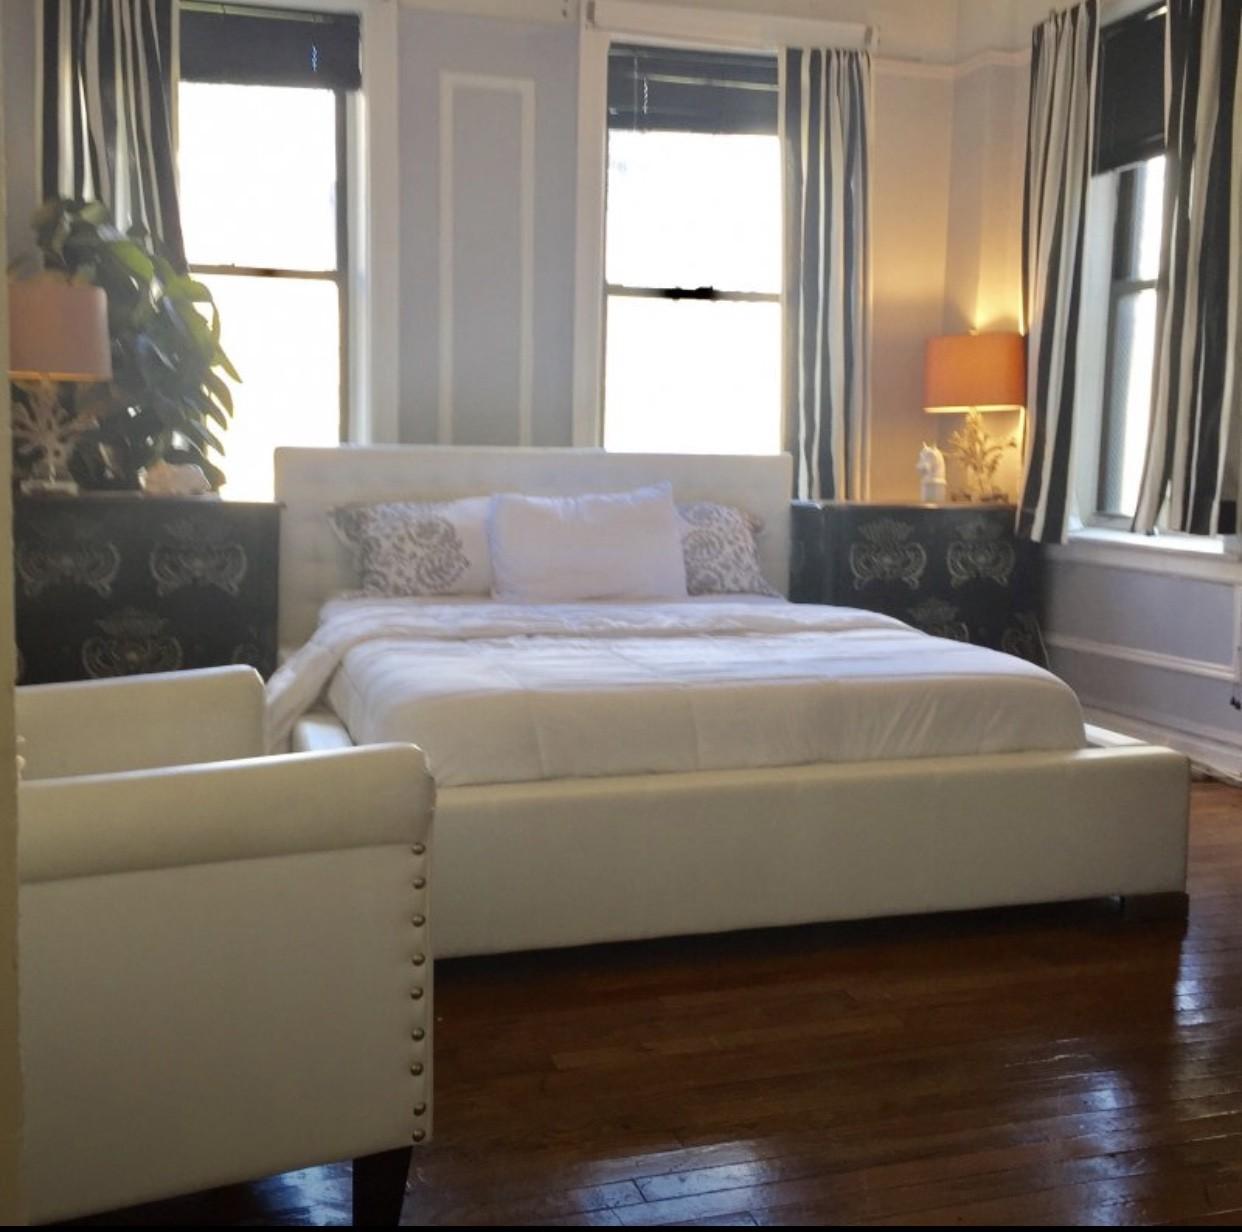 Big Beautiful and Clean bedroom in Very Large Manhattan Apartmen